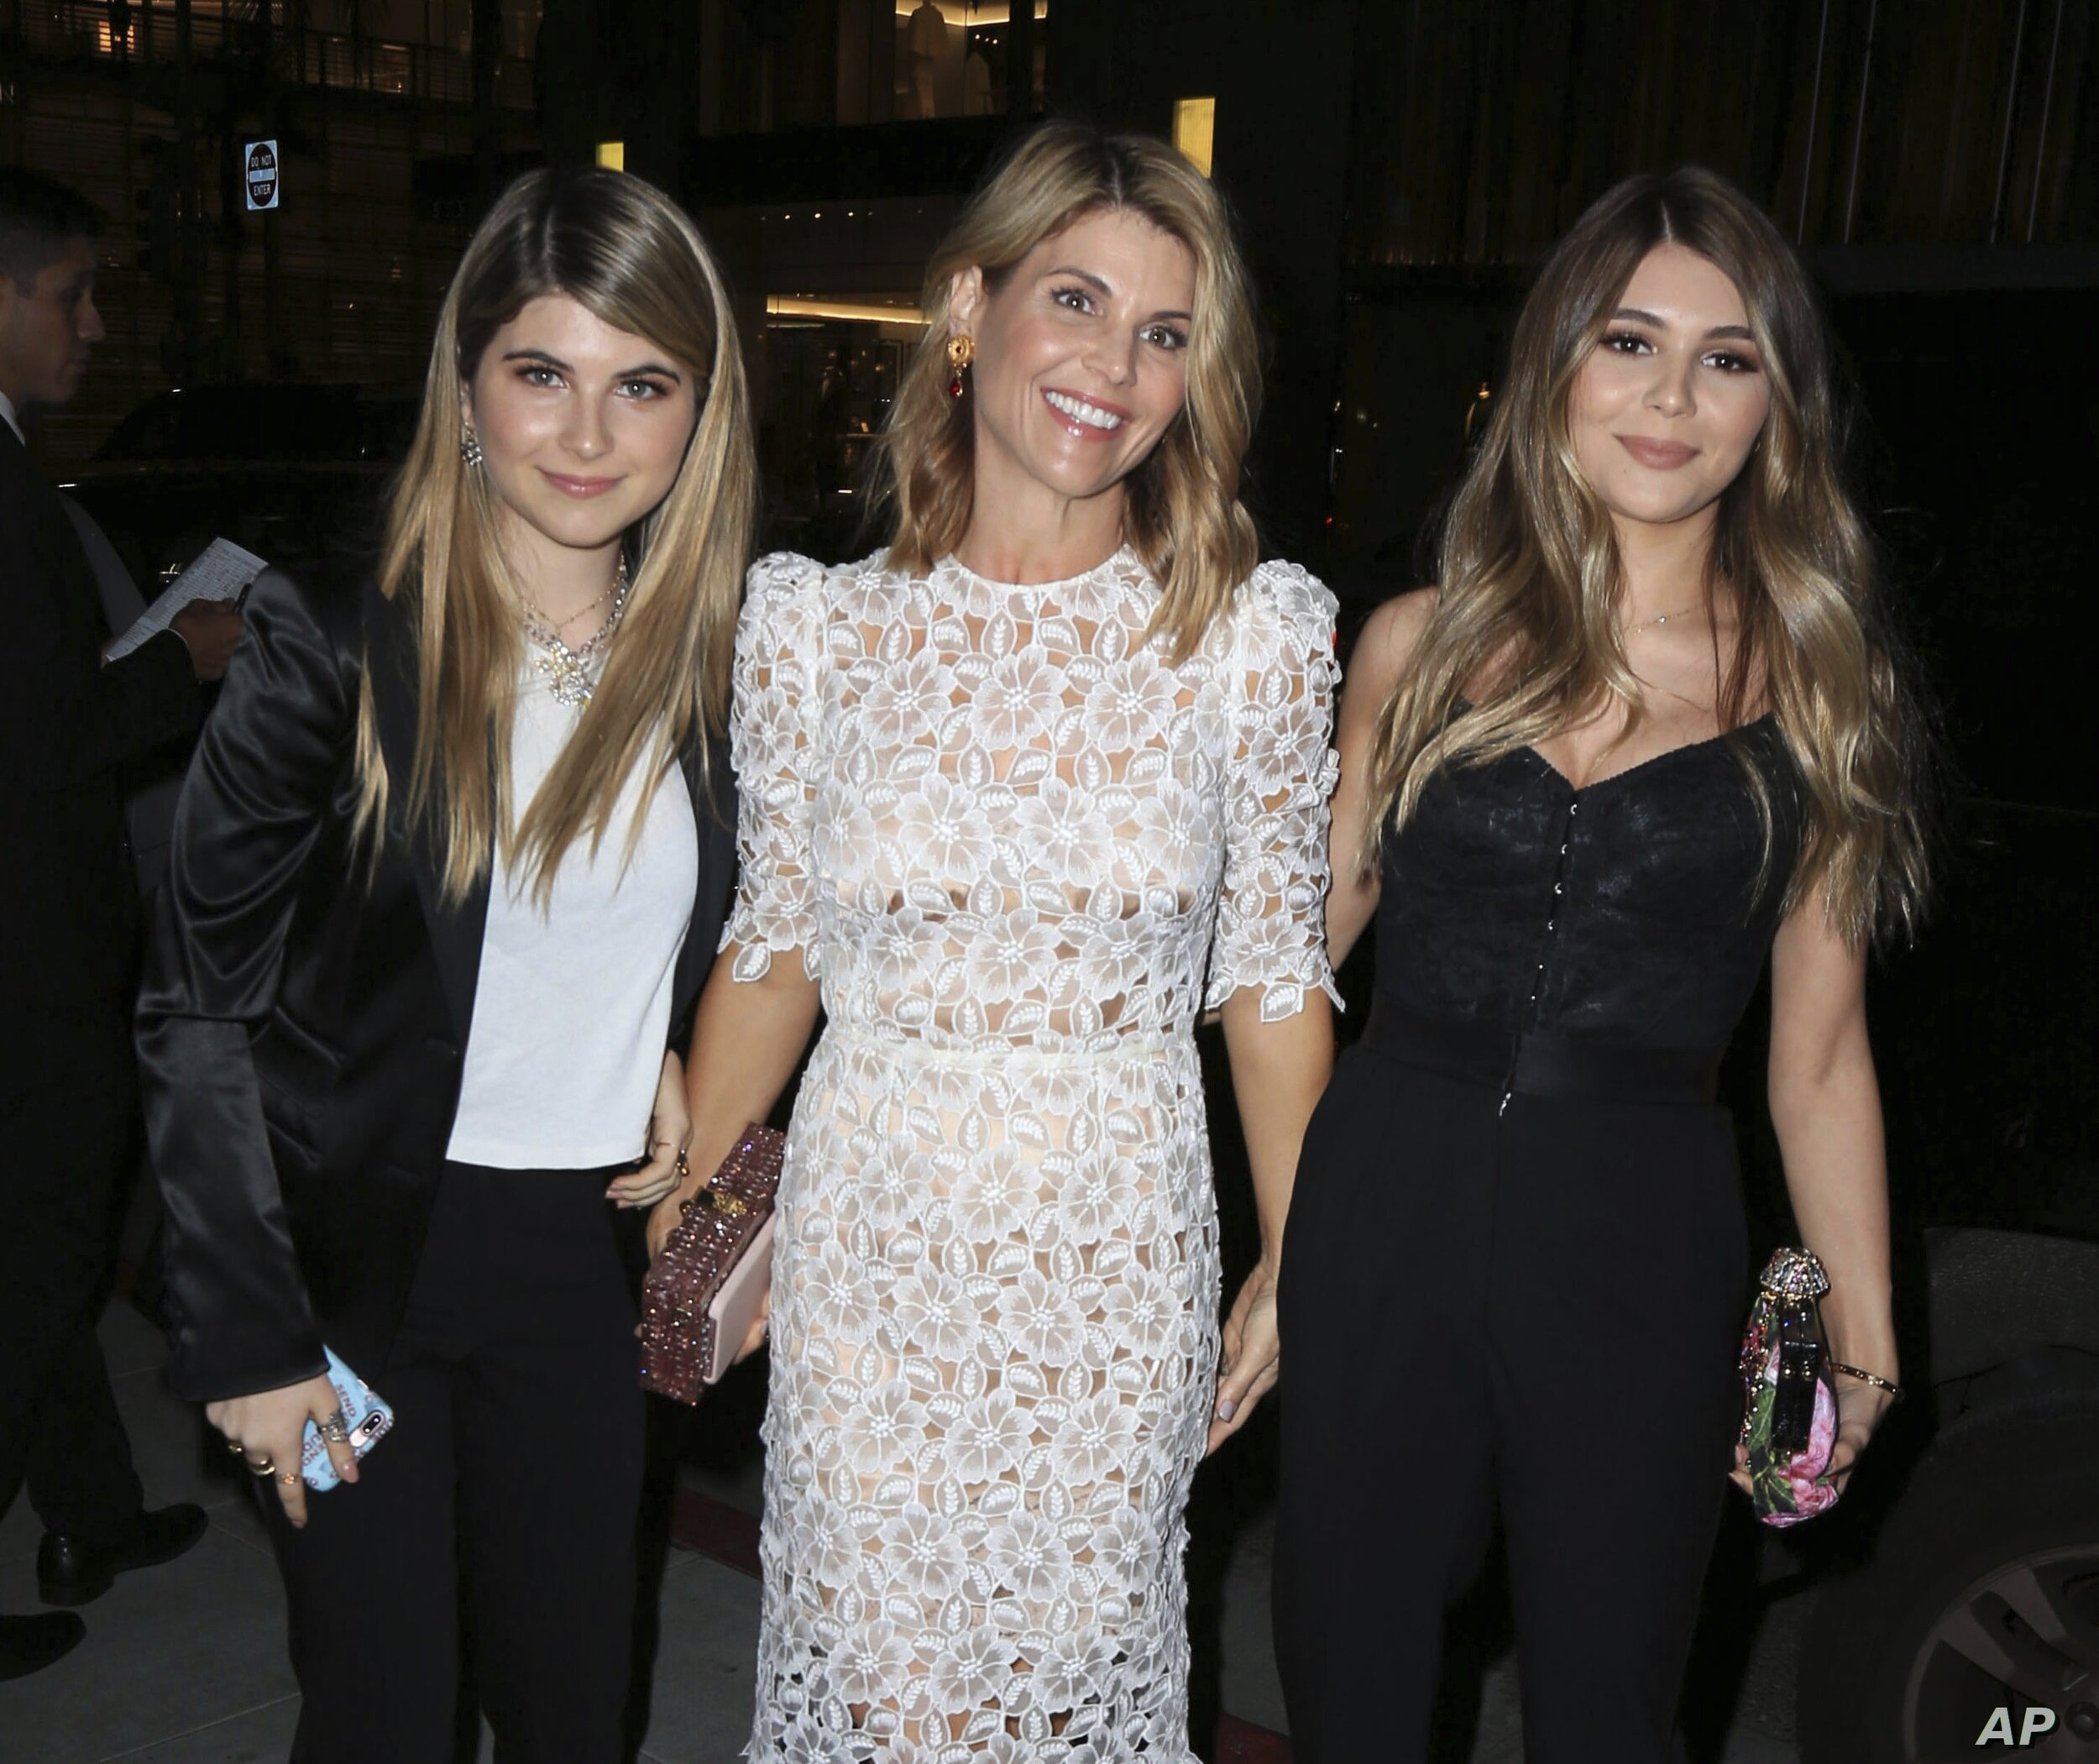 Lori and daughters via  Voa News